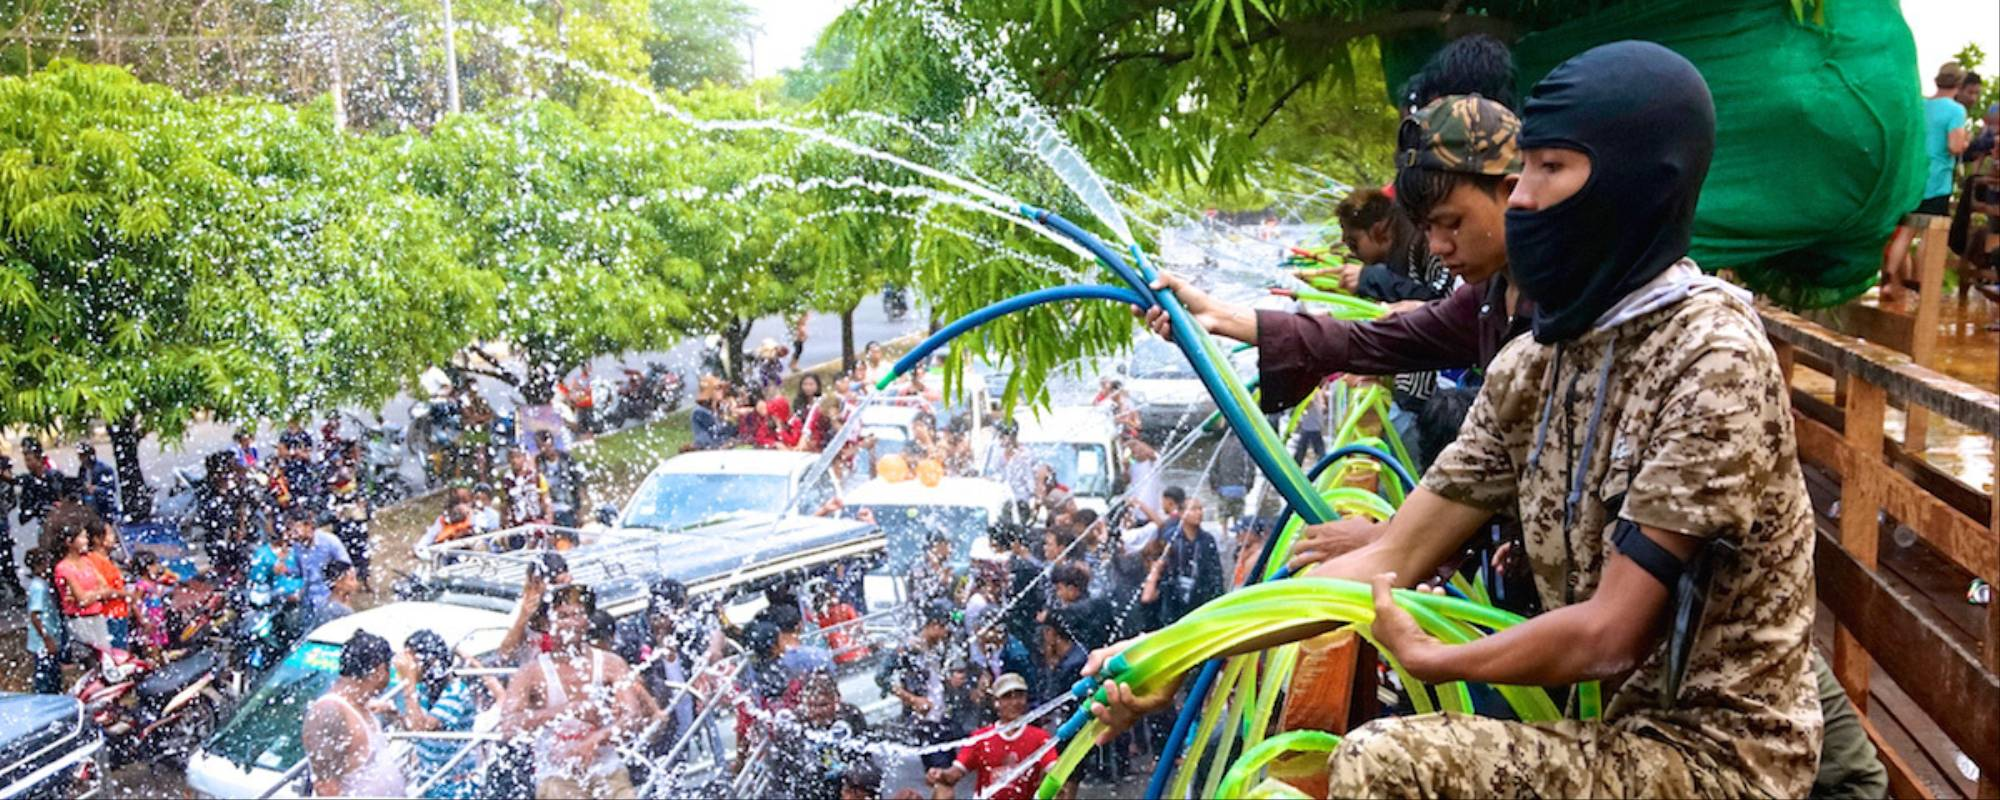 Myanmars Water Festival Is An Alcohol-Fueled, Misogynistic Mess  Broadly-7638